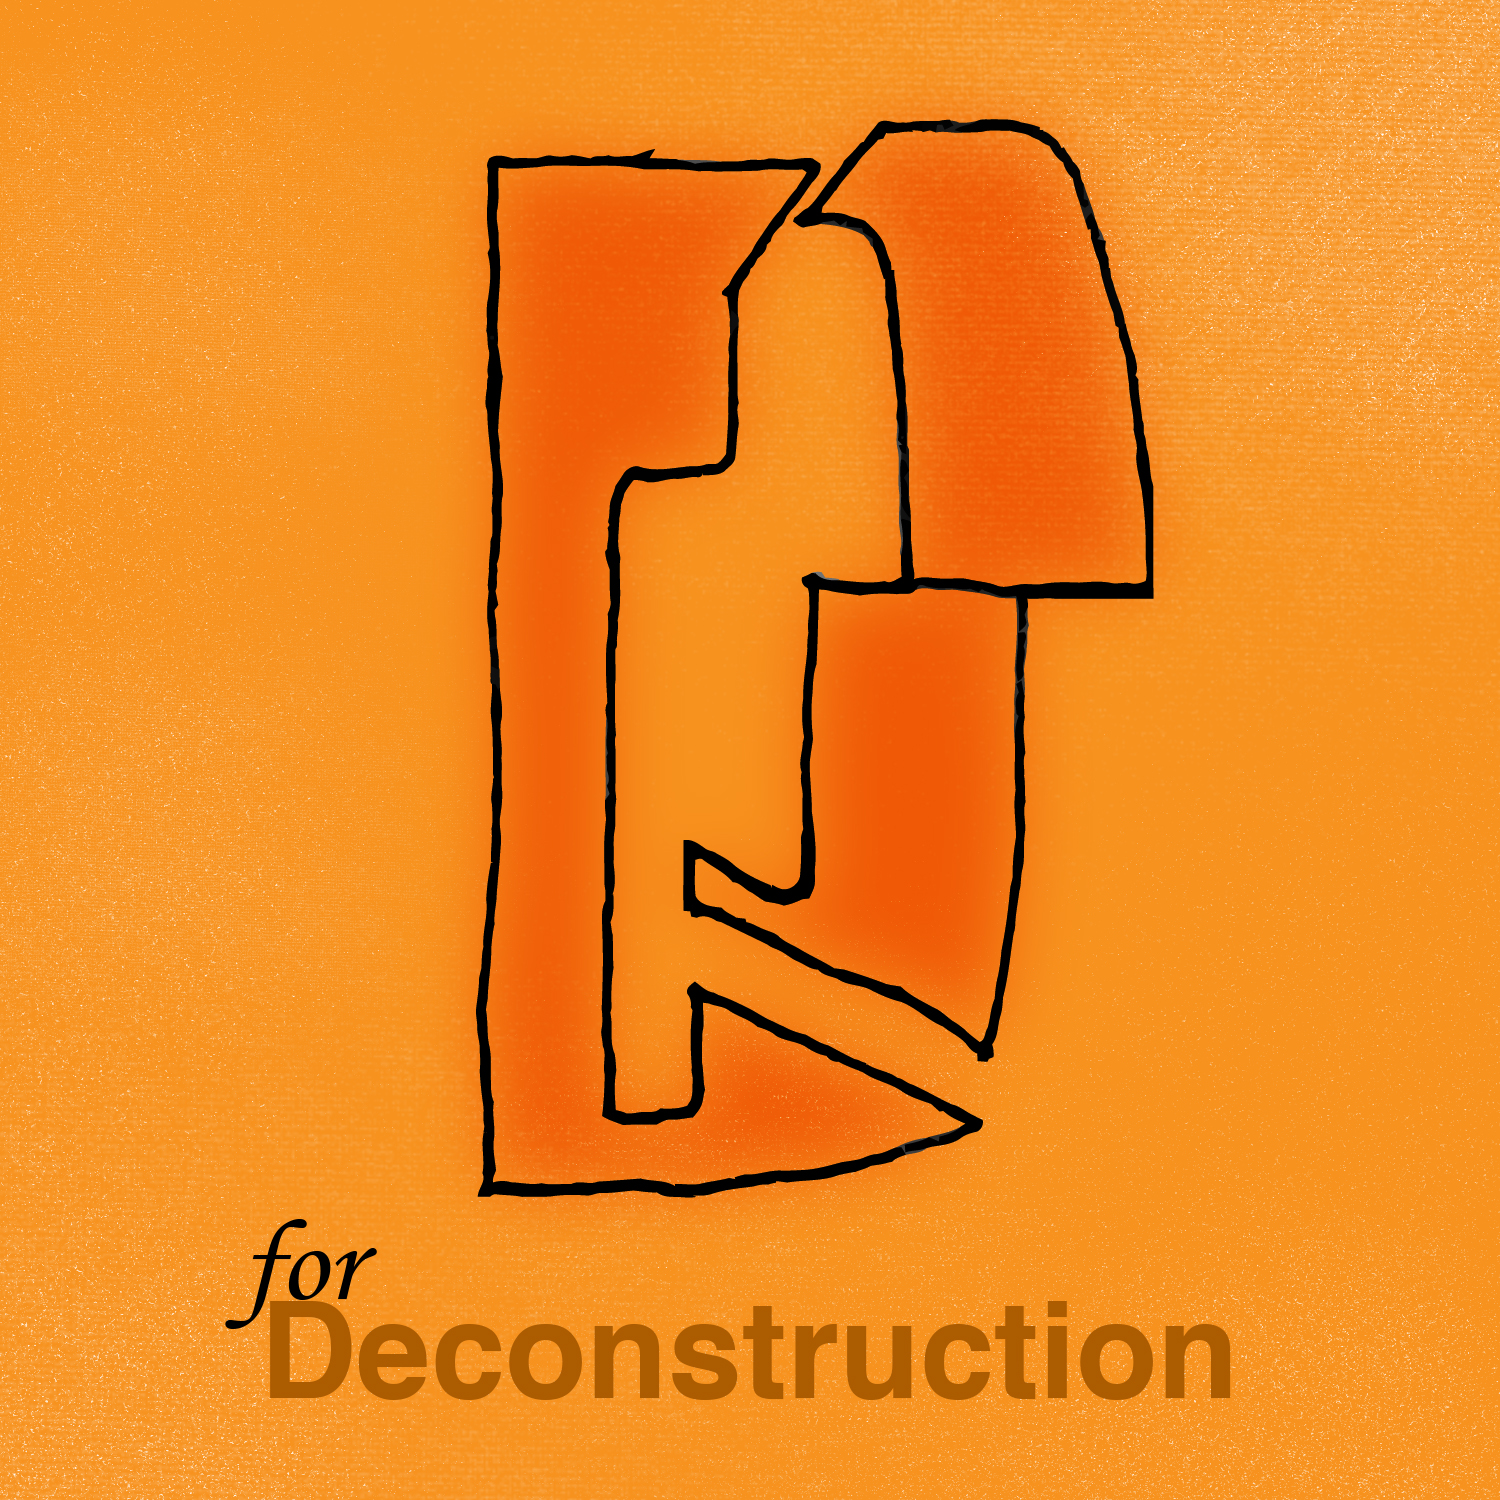 D is for Deconstruct